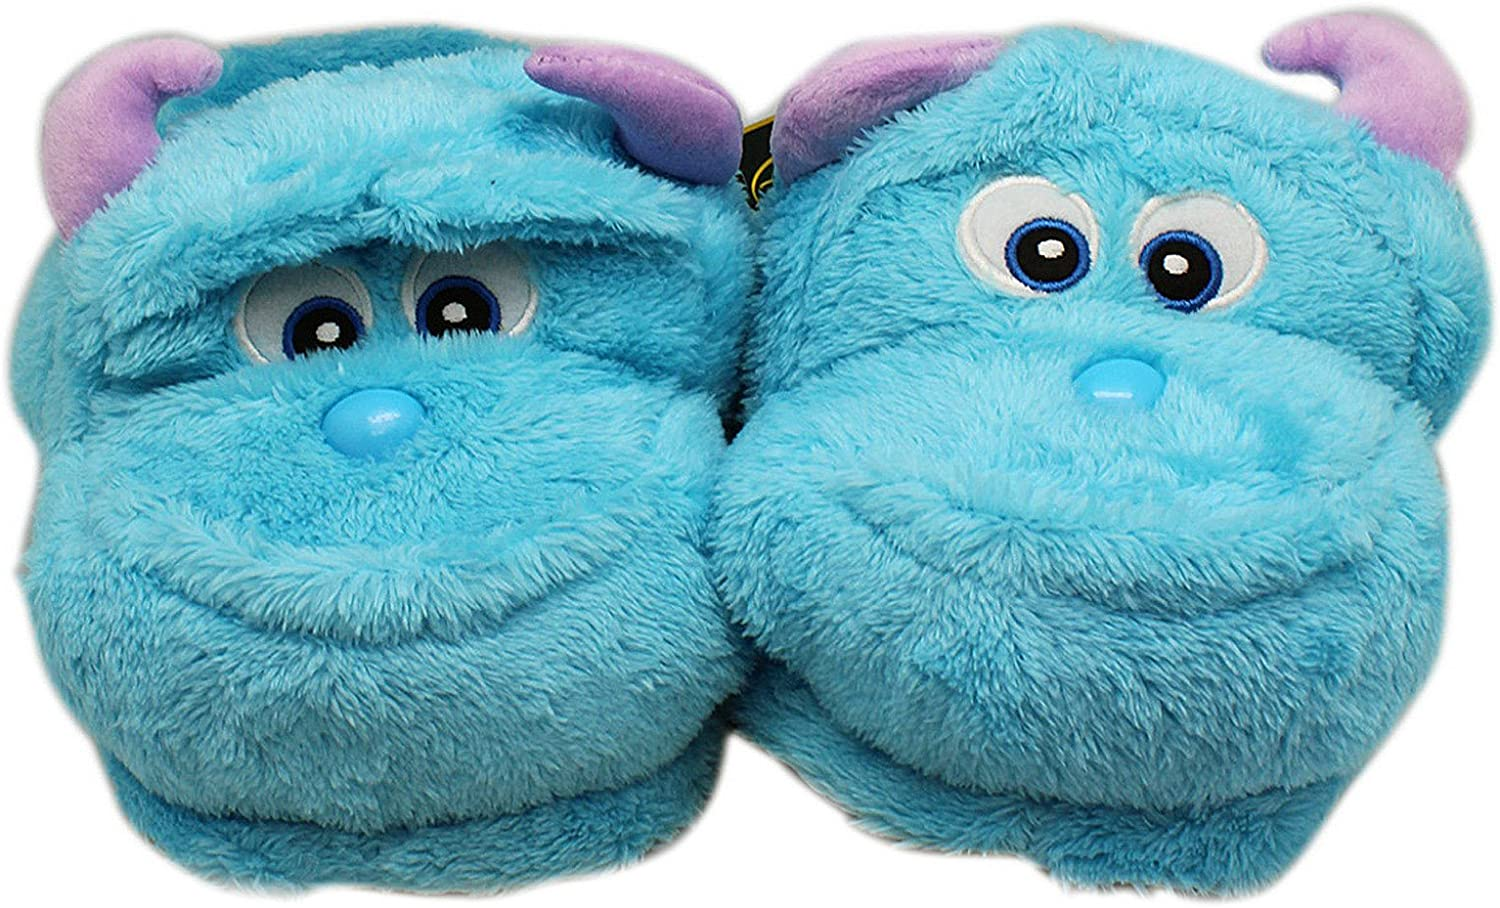 Disney's Monsters Inc. Sully Soft and